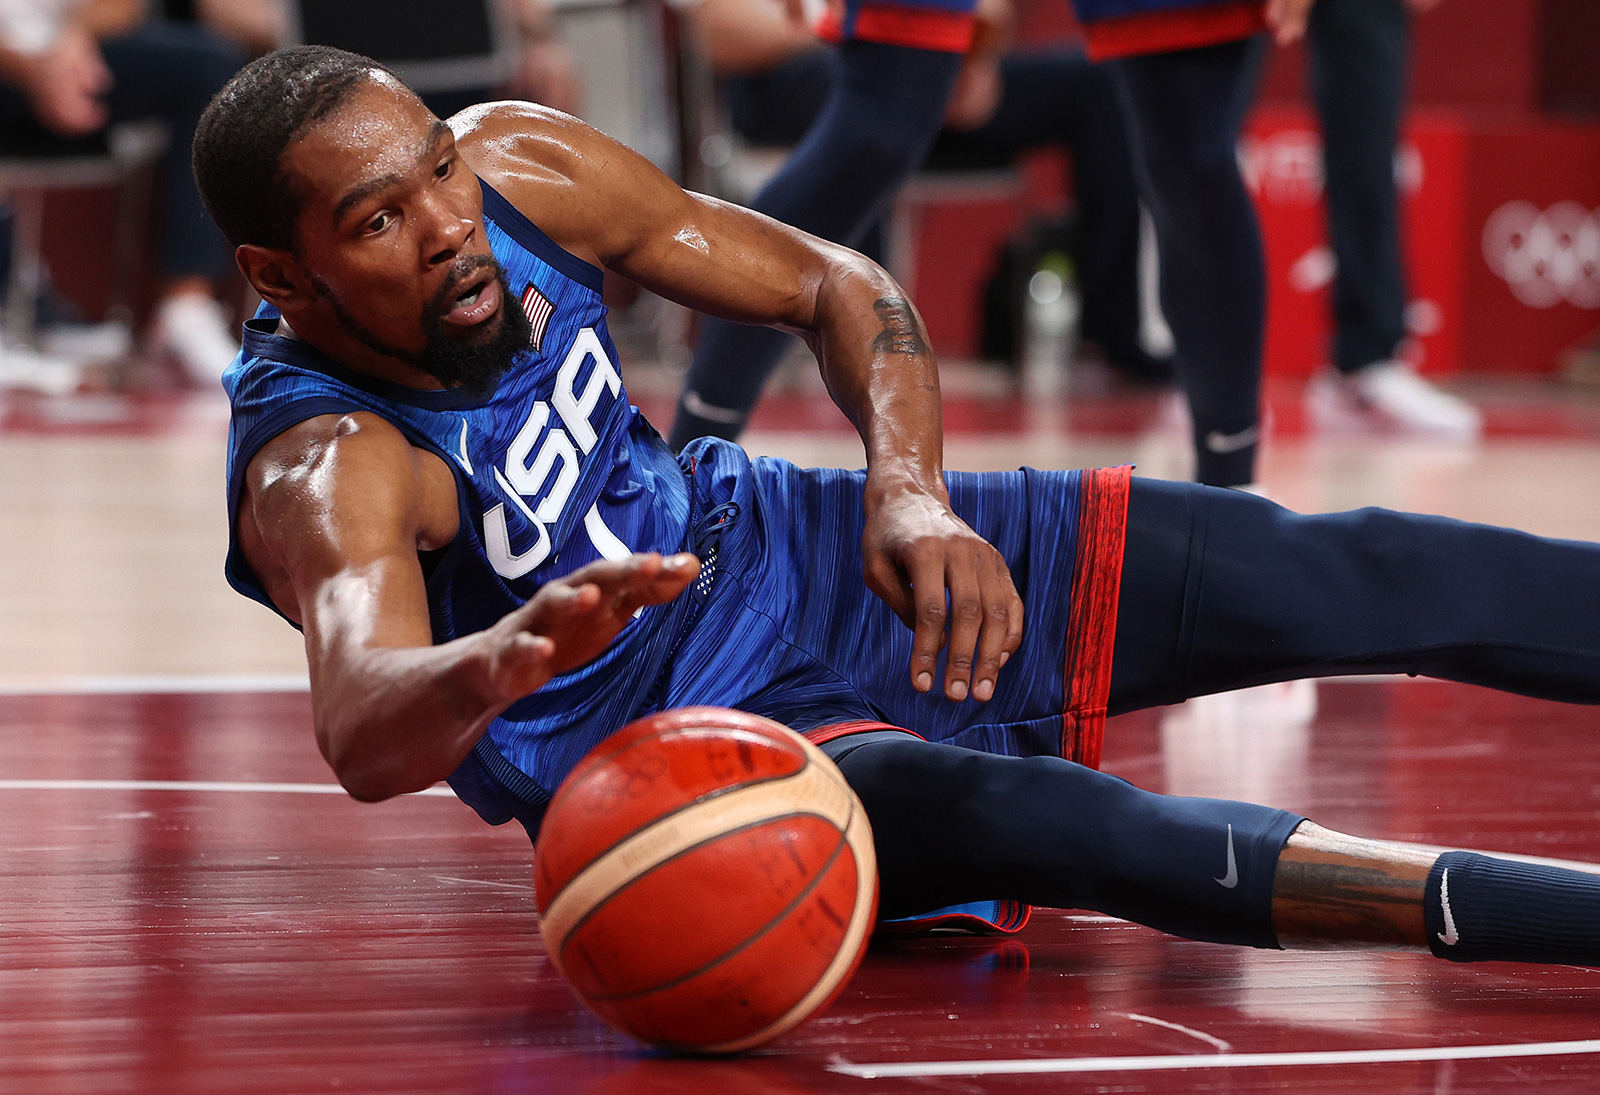 Team USA's Kevin Durant dives for a loose ball against Spain during the second half of their men's basketball quarterfinal at the Tokyo 2020 Olympic Games at Saitama Super Arena on Tuesday.